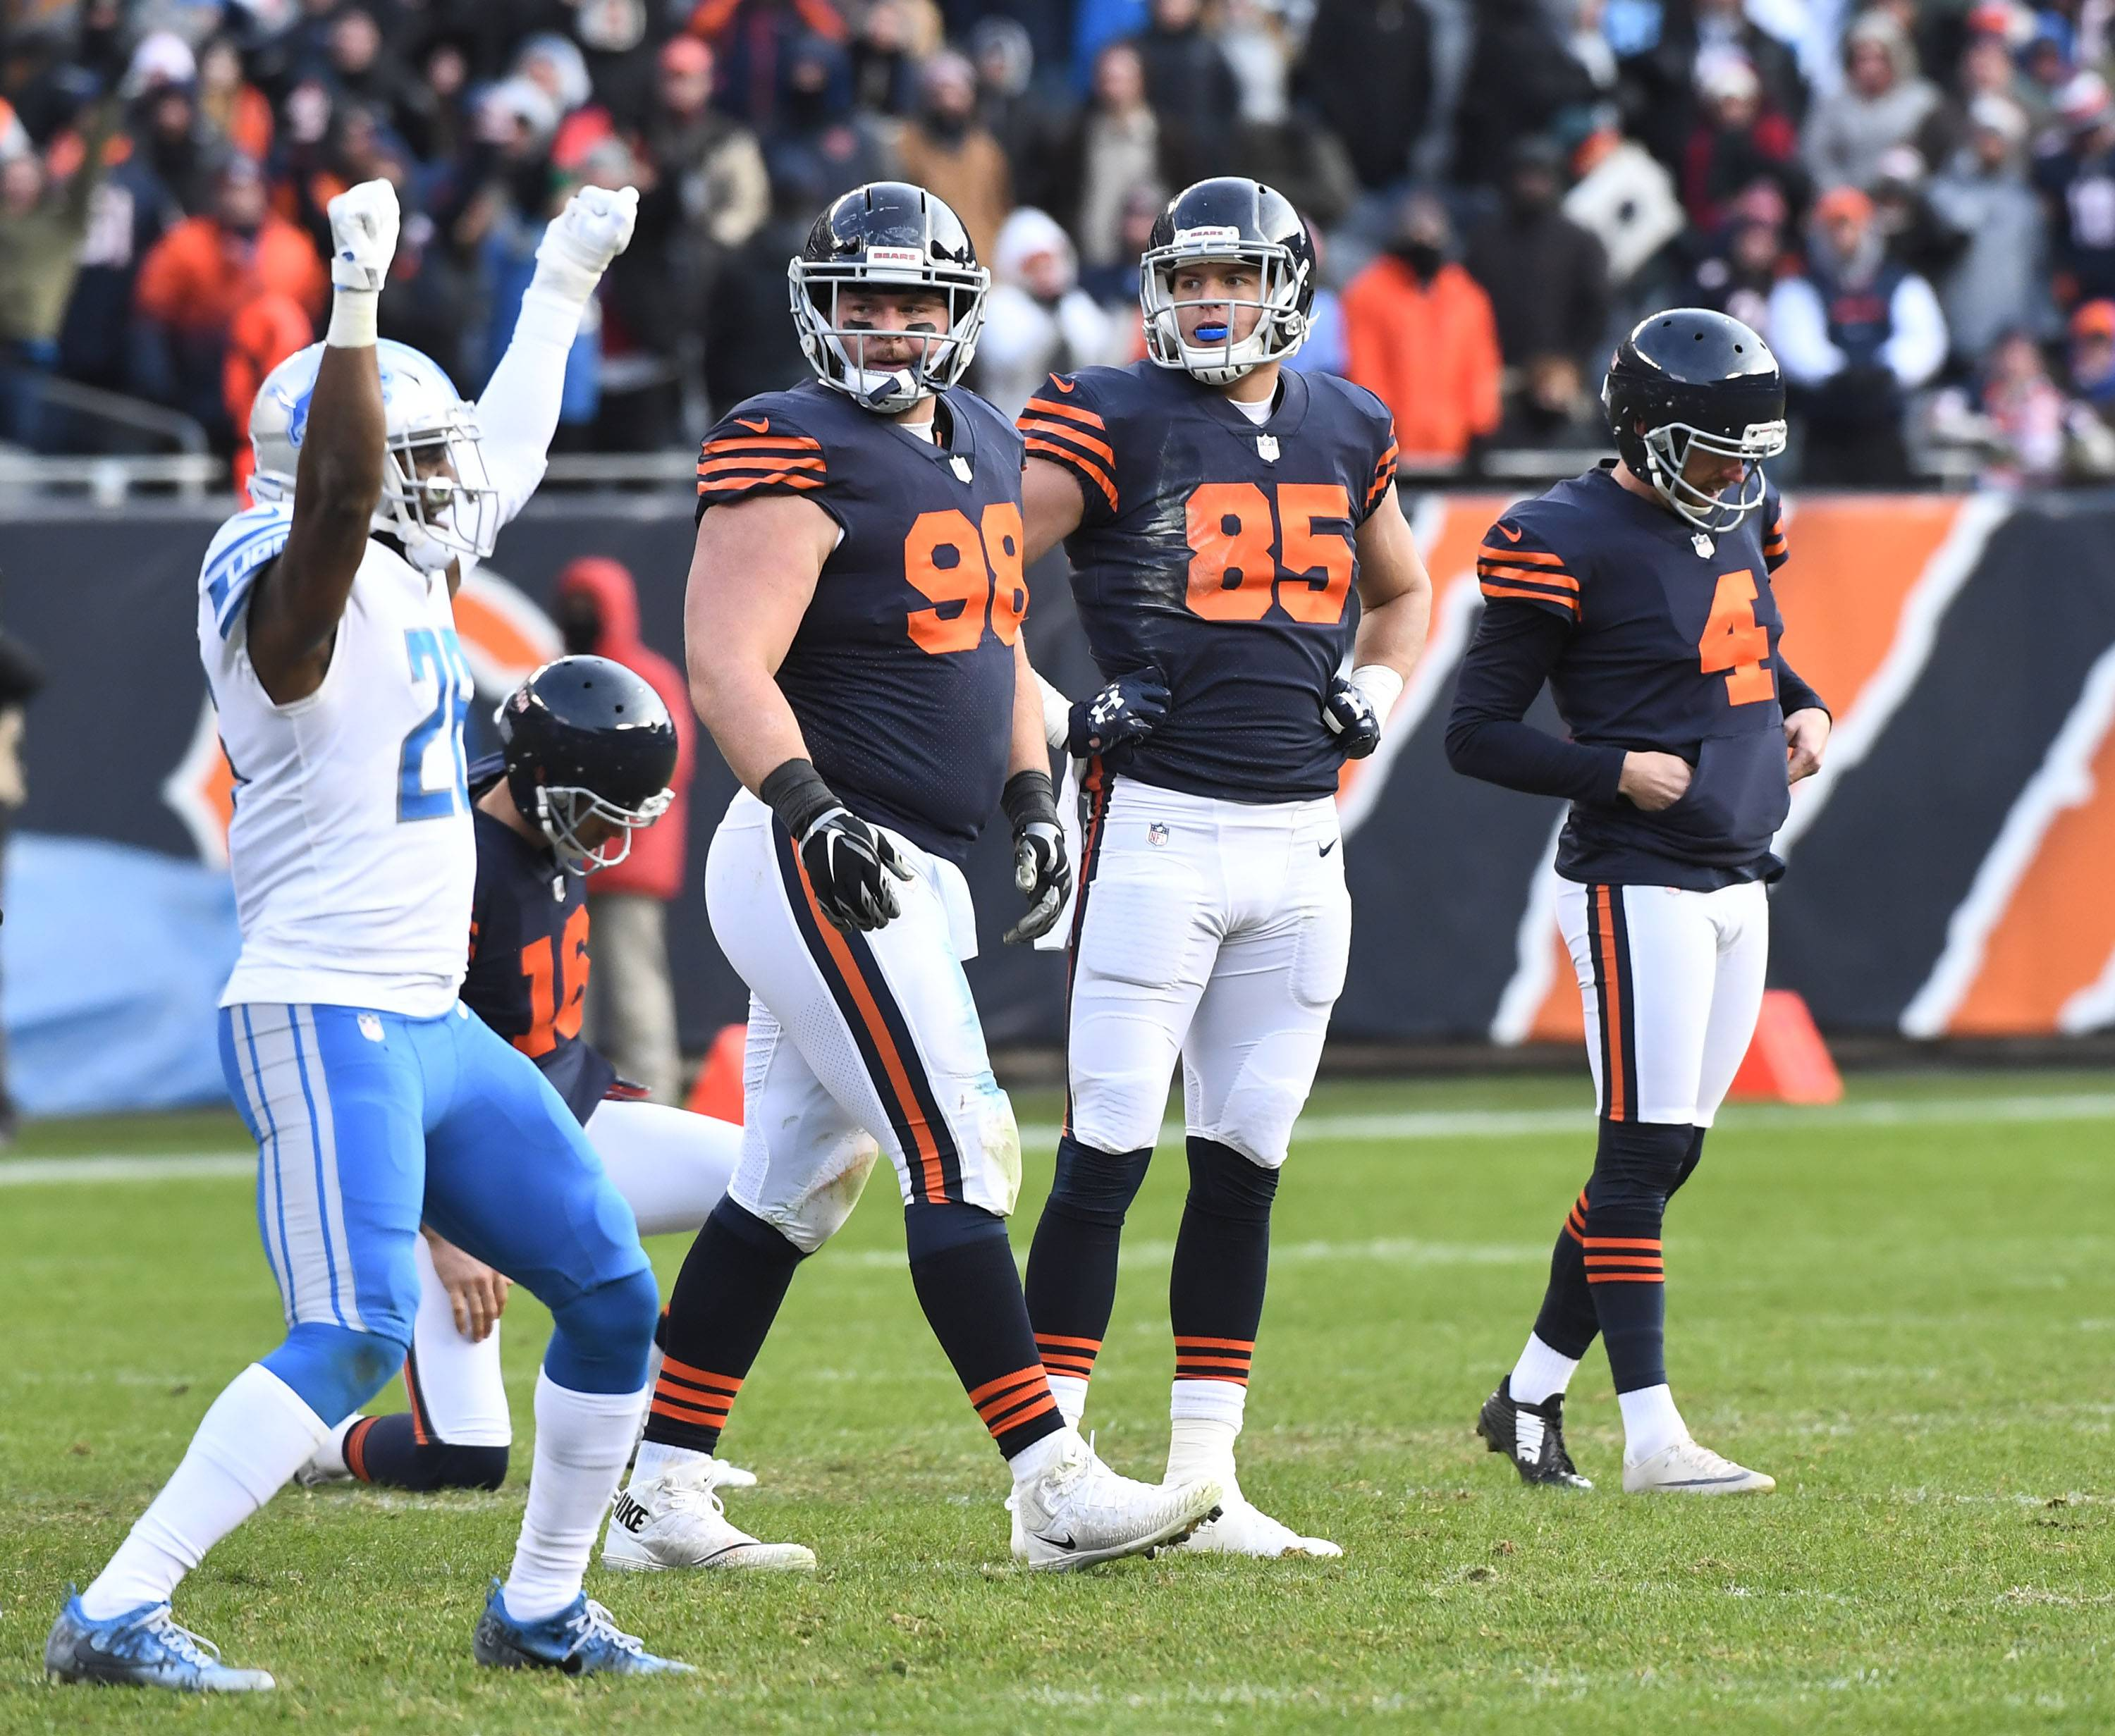 Images: Bears lose to Lions 27-24